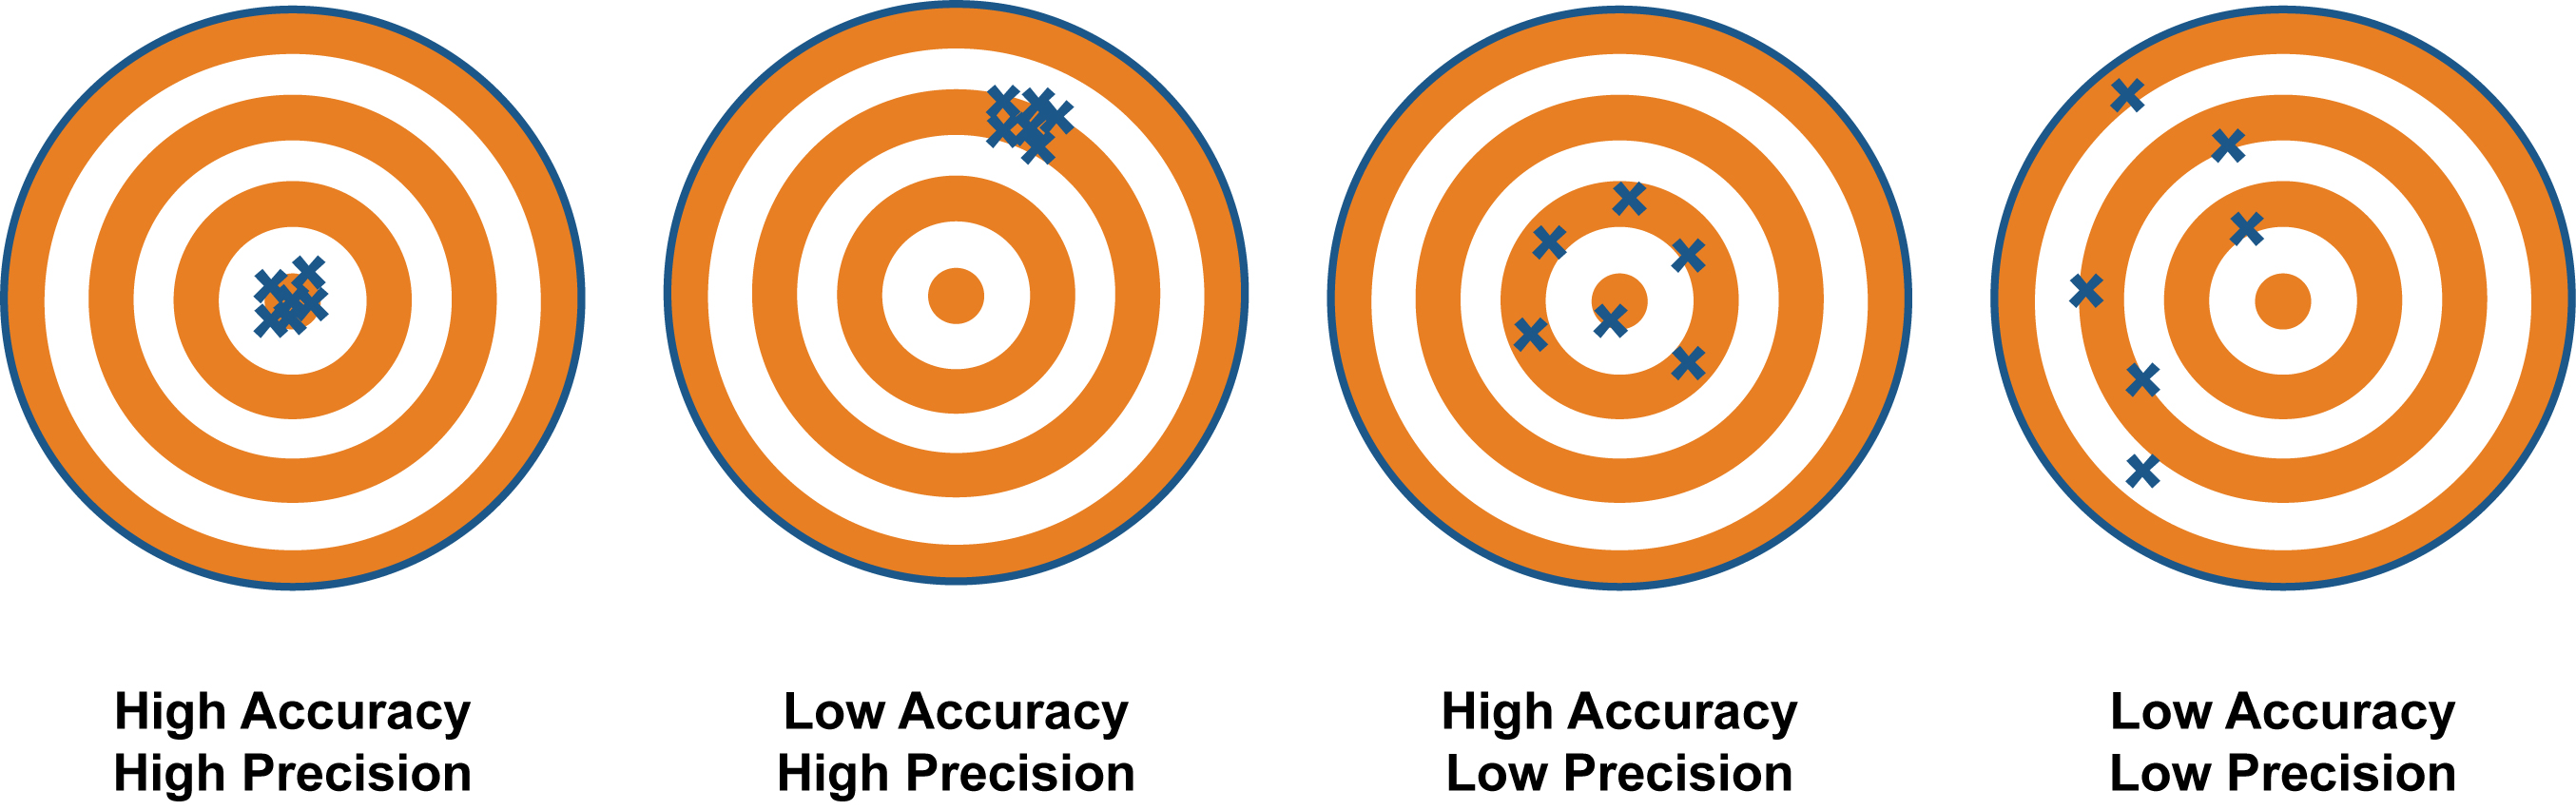 A Bad Hypothesis Can Lead To Low Accuracy But High